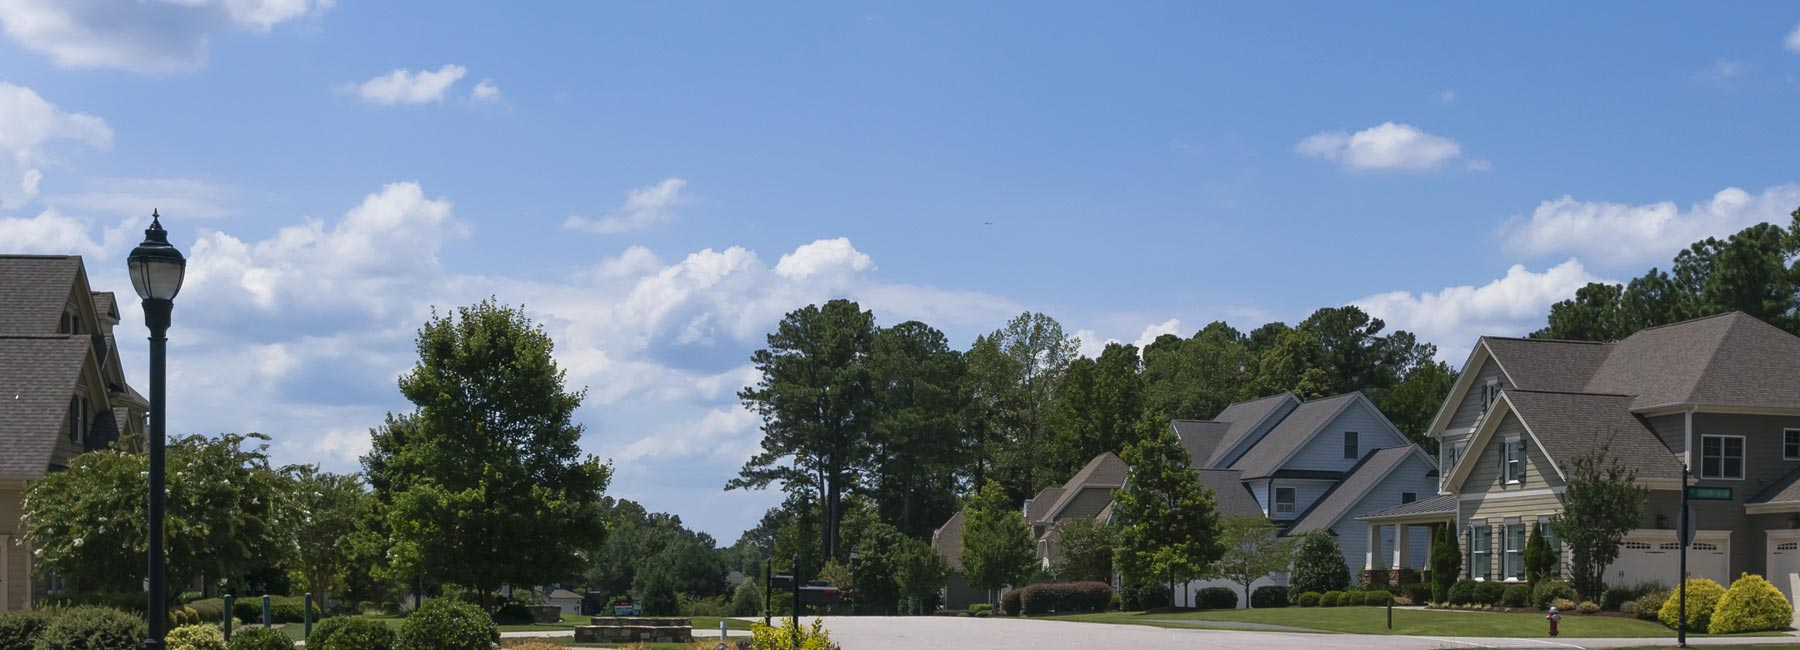 Meares Bluff View Available Homes